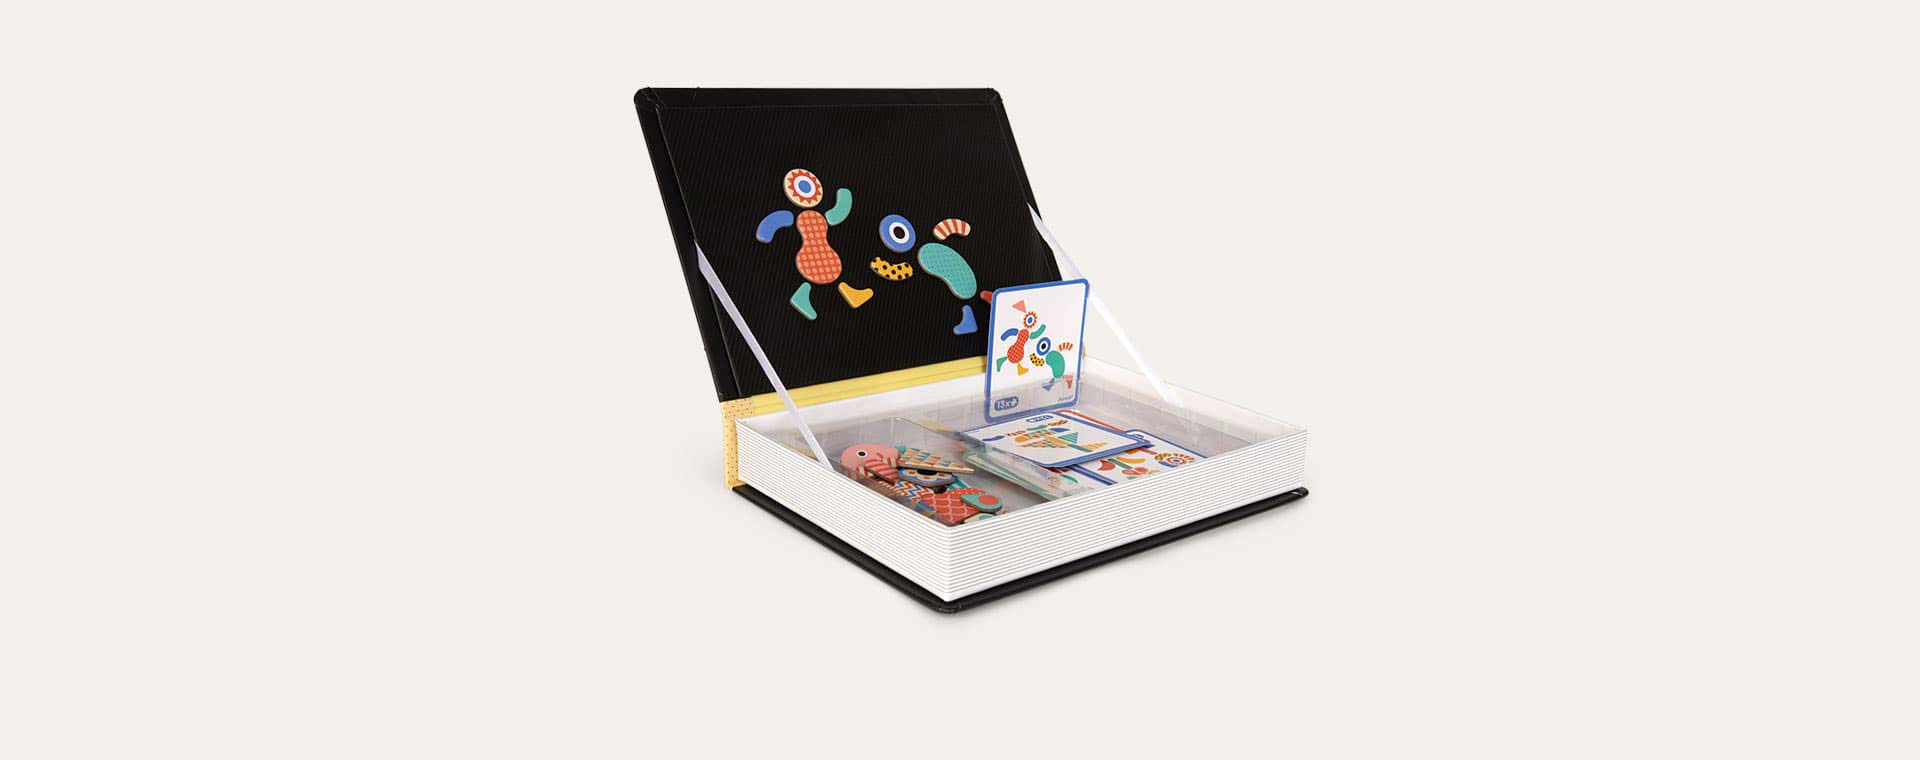 Modulo Janod Magnetibook Educational Toy